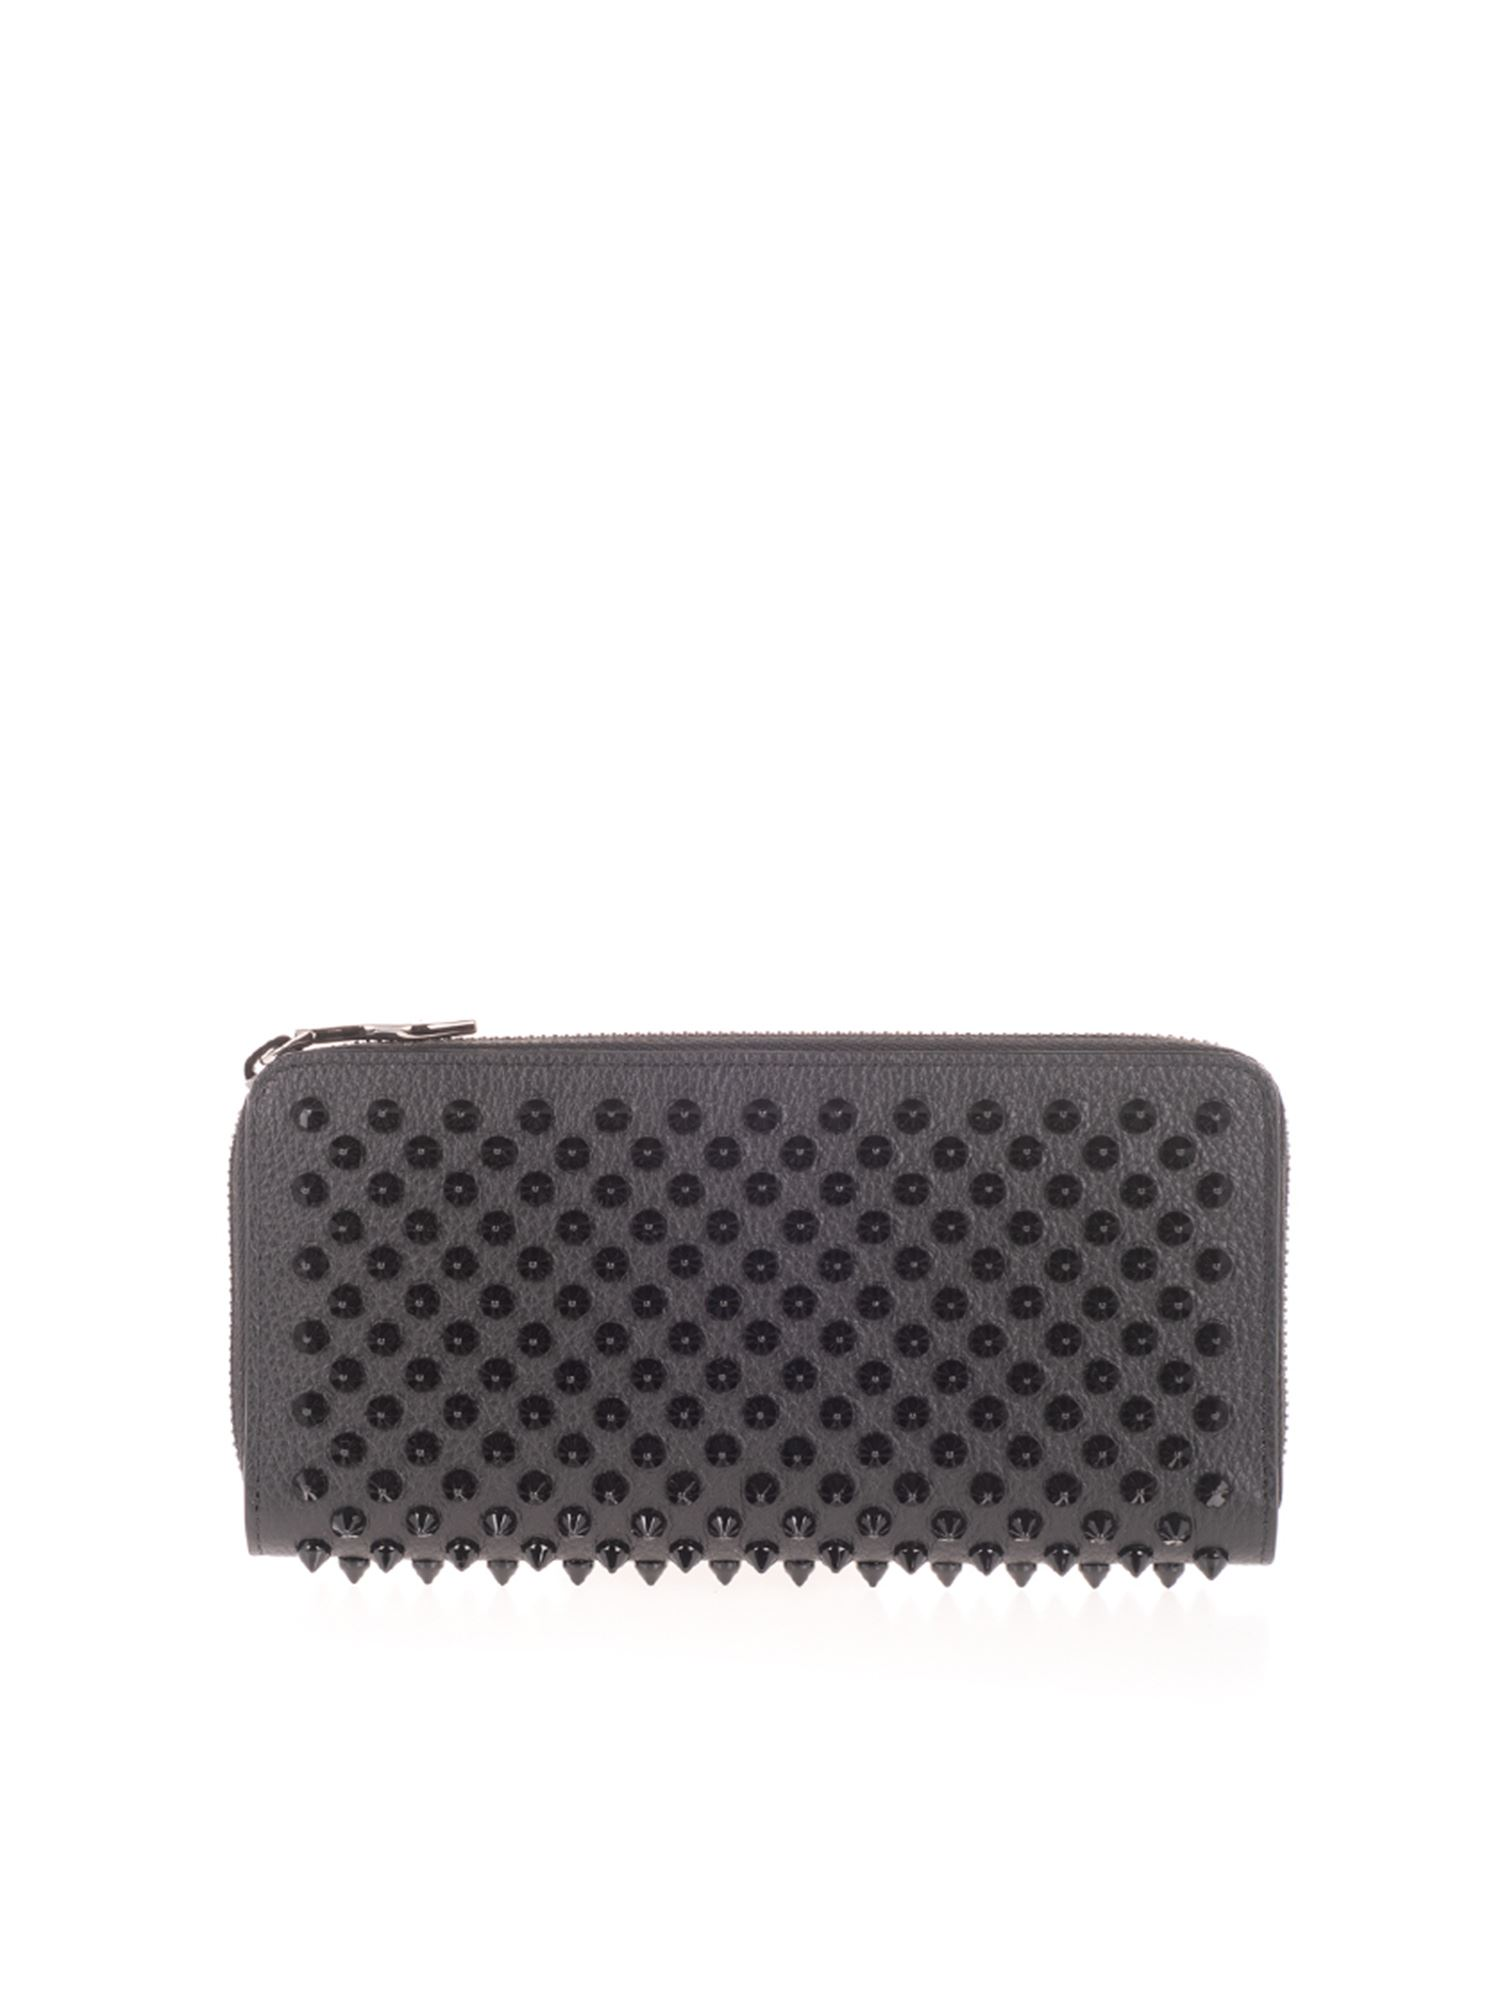 Christian Louboutin STUDDED WALLET IN BLACK